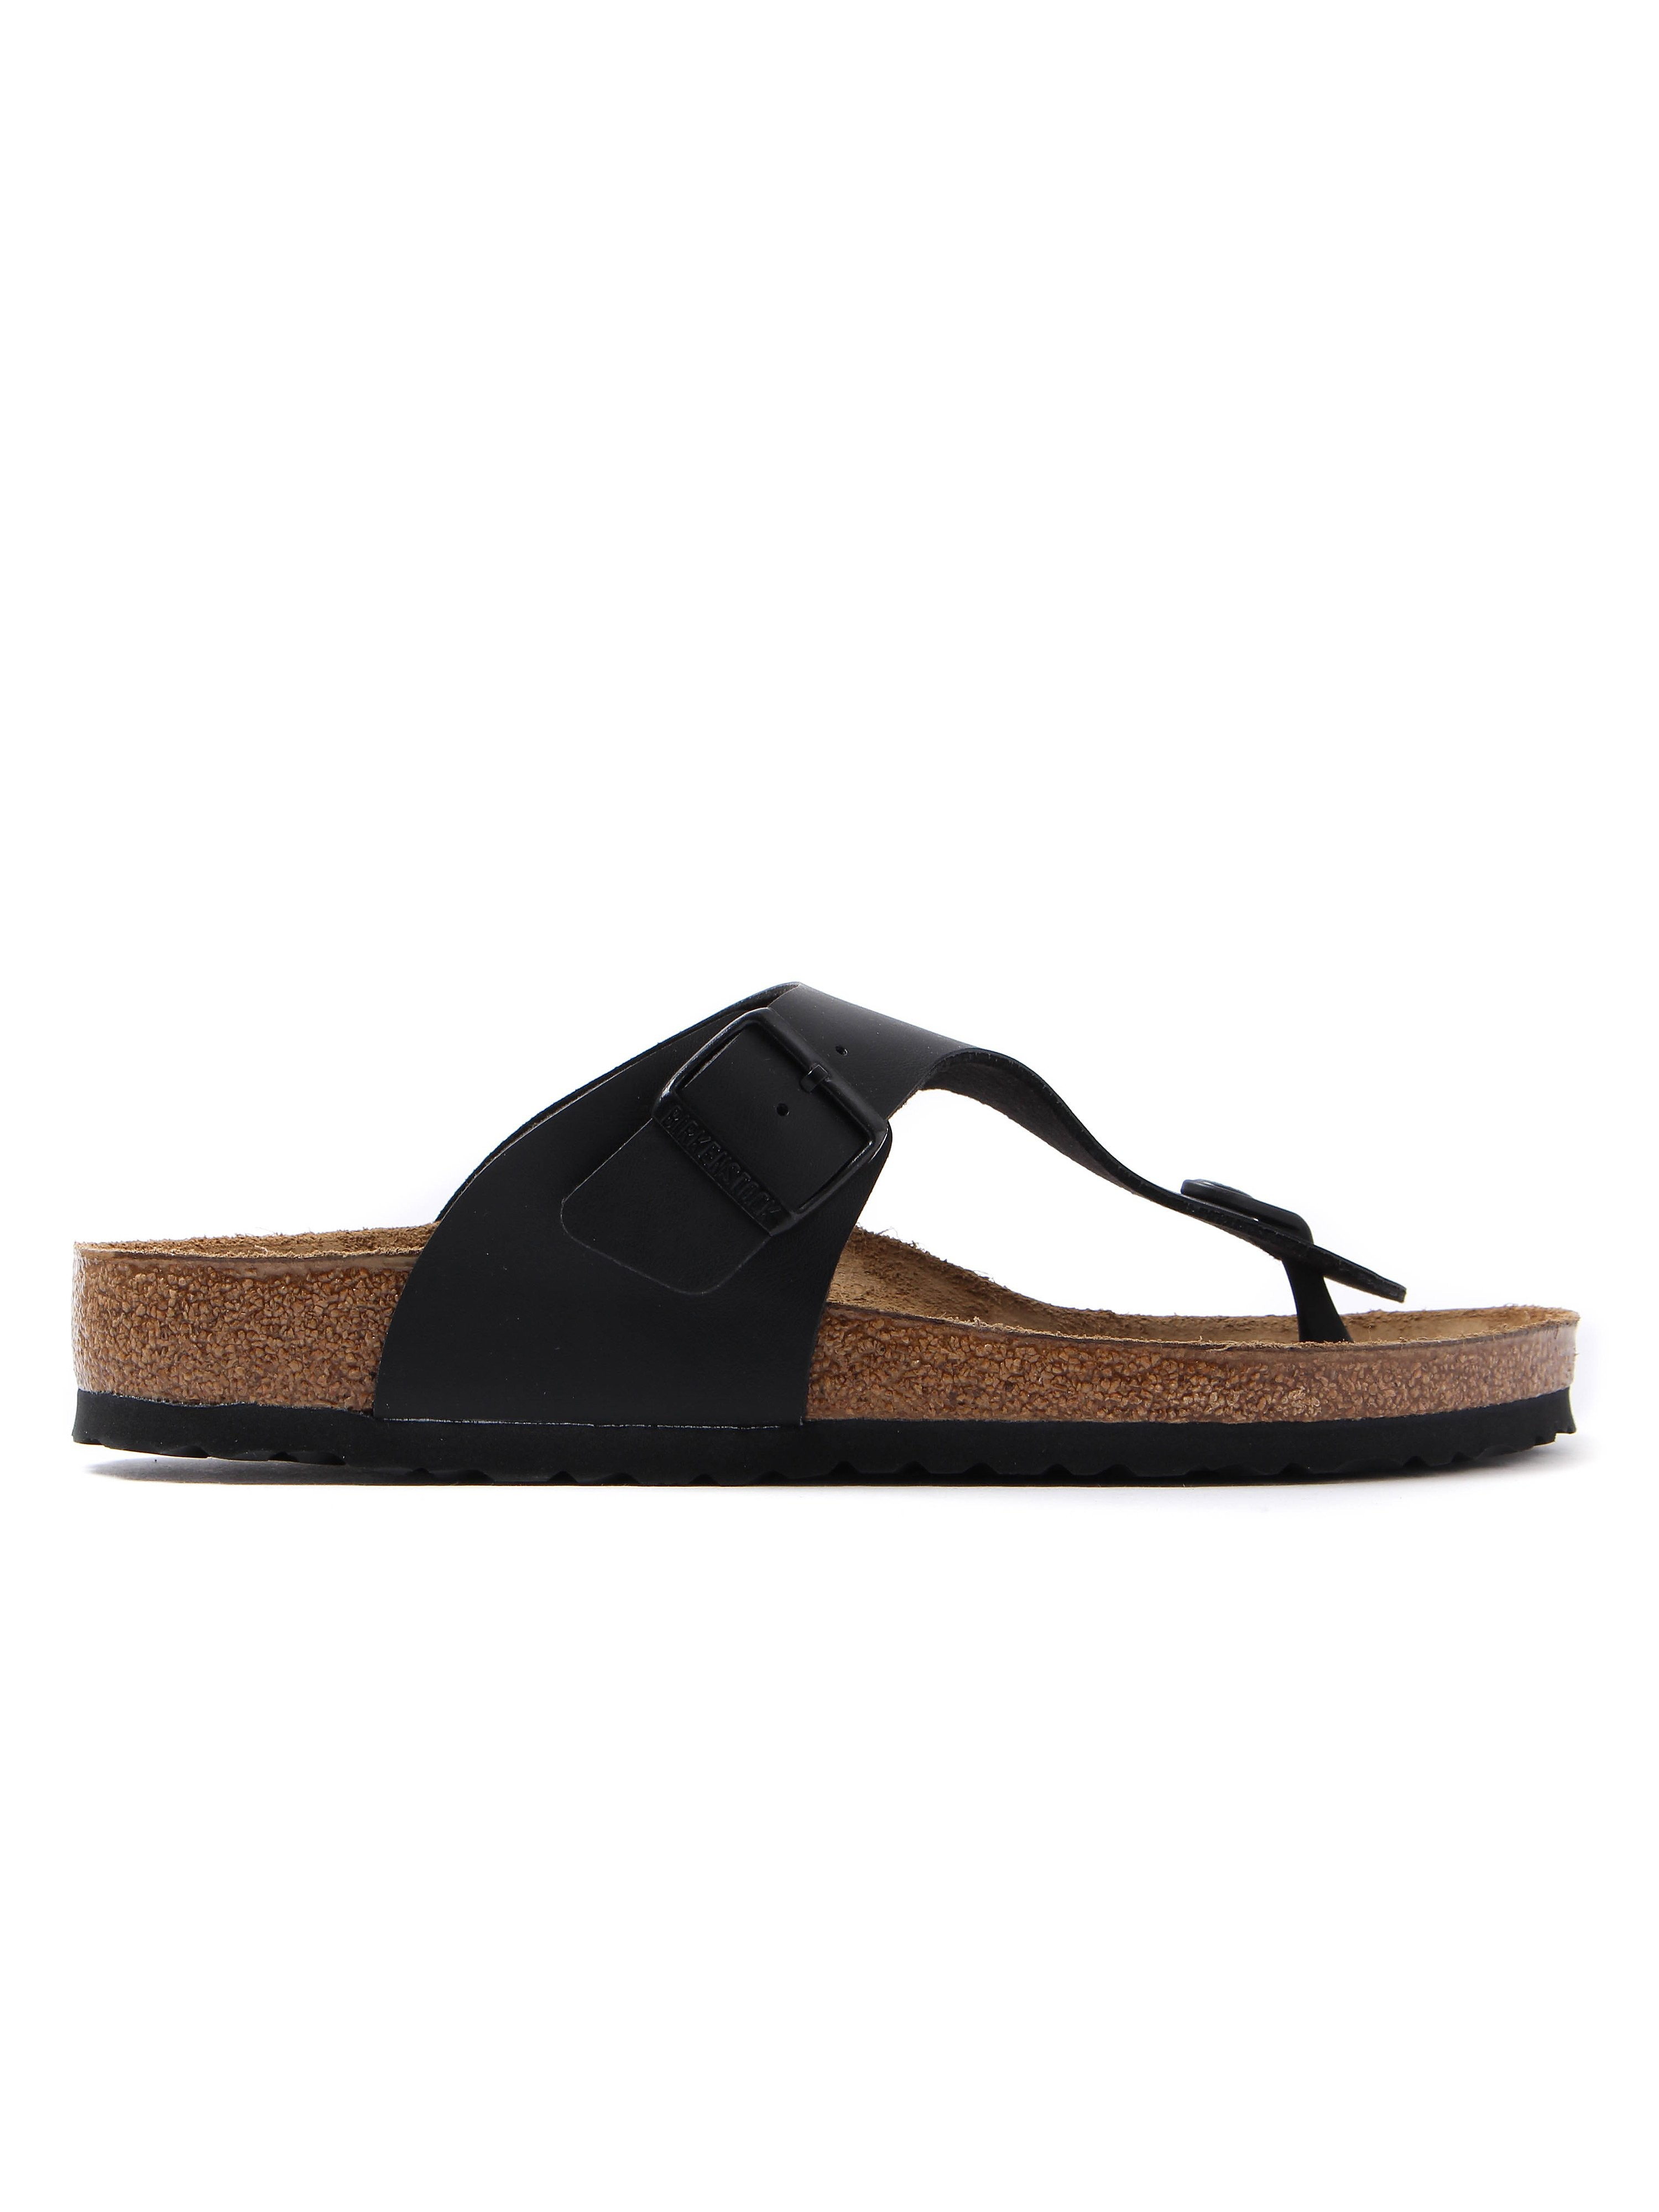 Birkenstock Men's Ramses Toe Strap Sandals - Black